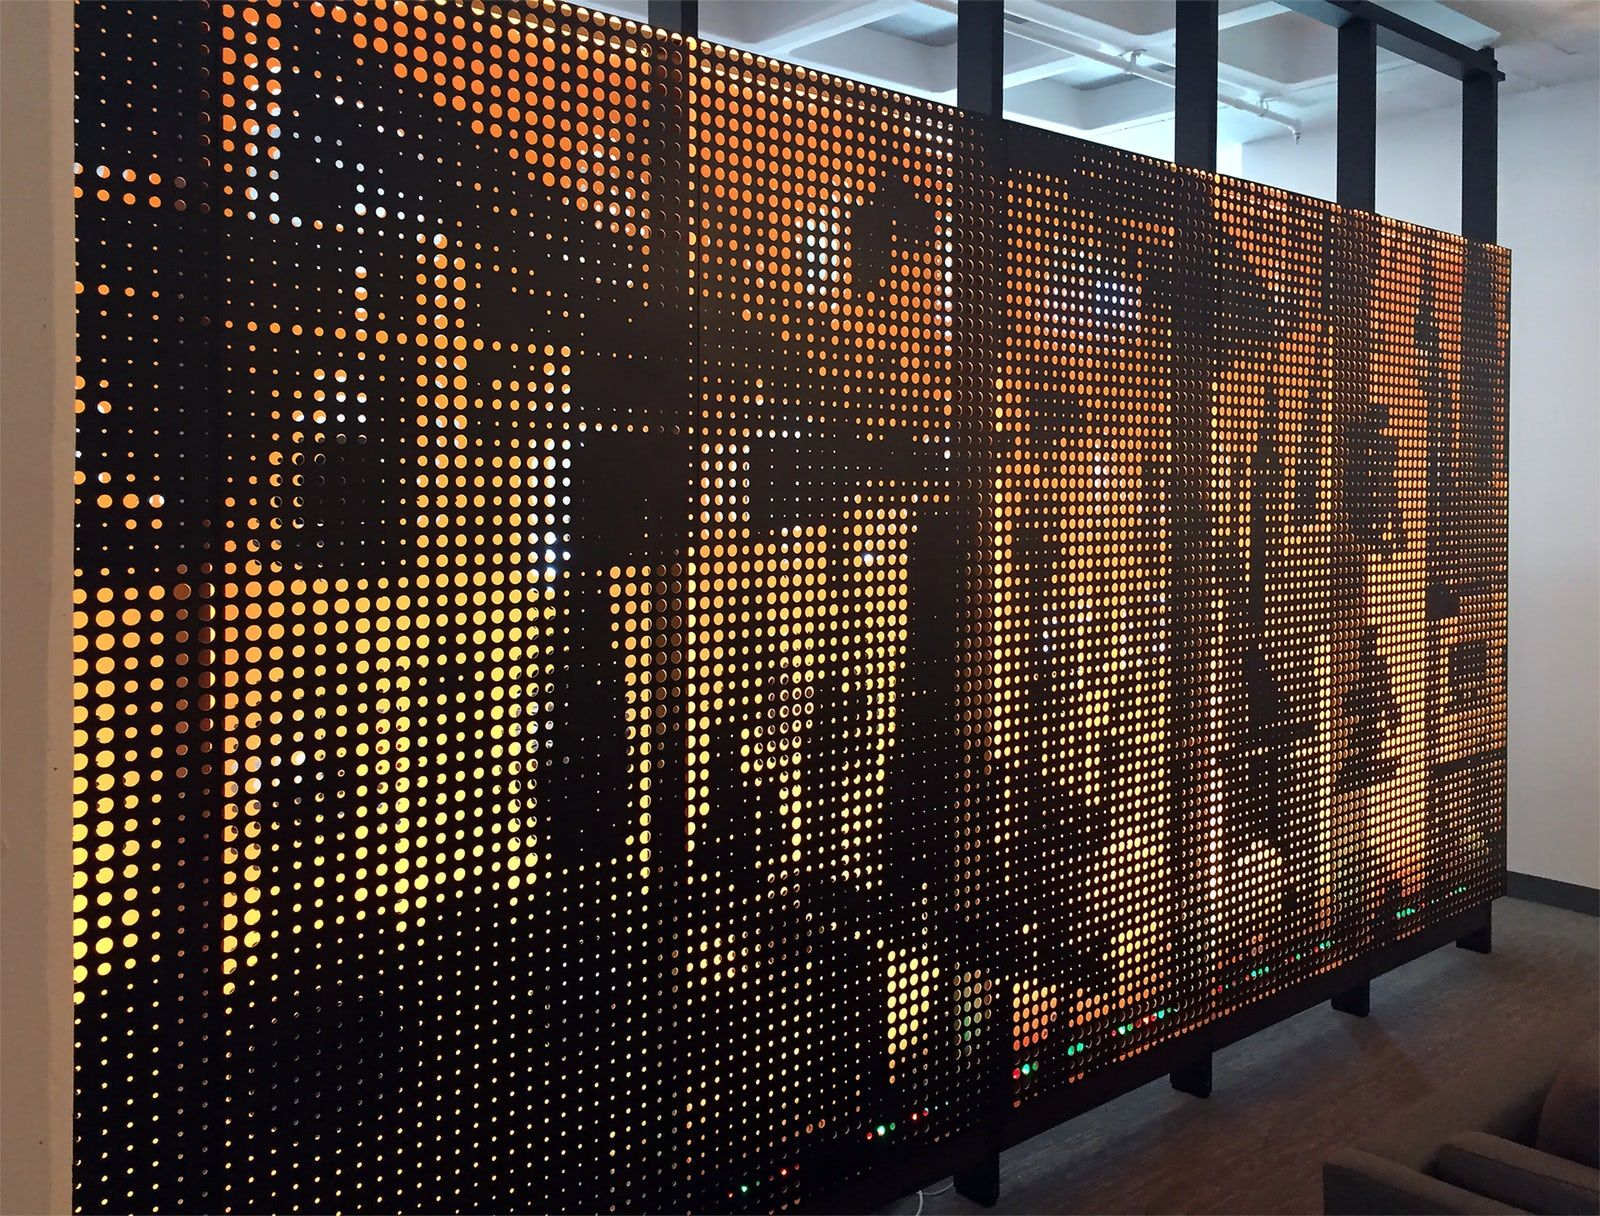 twitter san francisco office. Custom Perforated Painted Aluminum Screens And Wall Panels For Twitter HQ\u0027s Corporate Office Space In San Francisco R